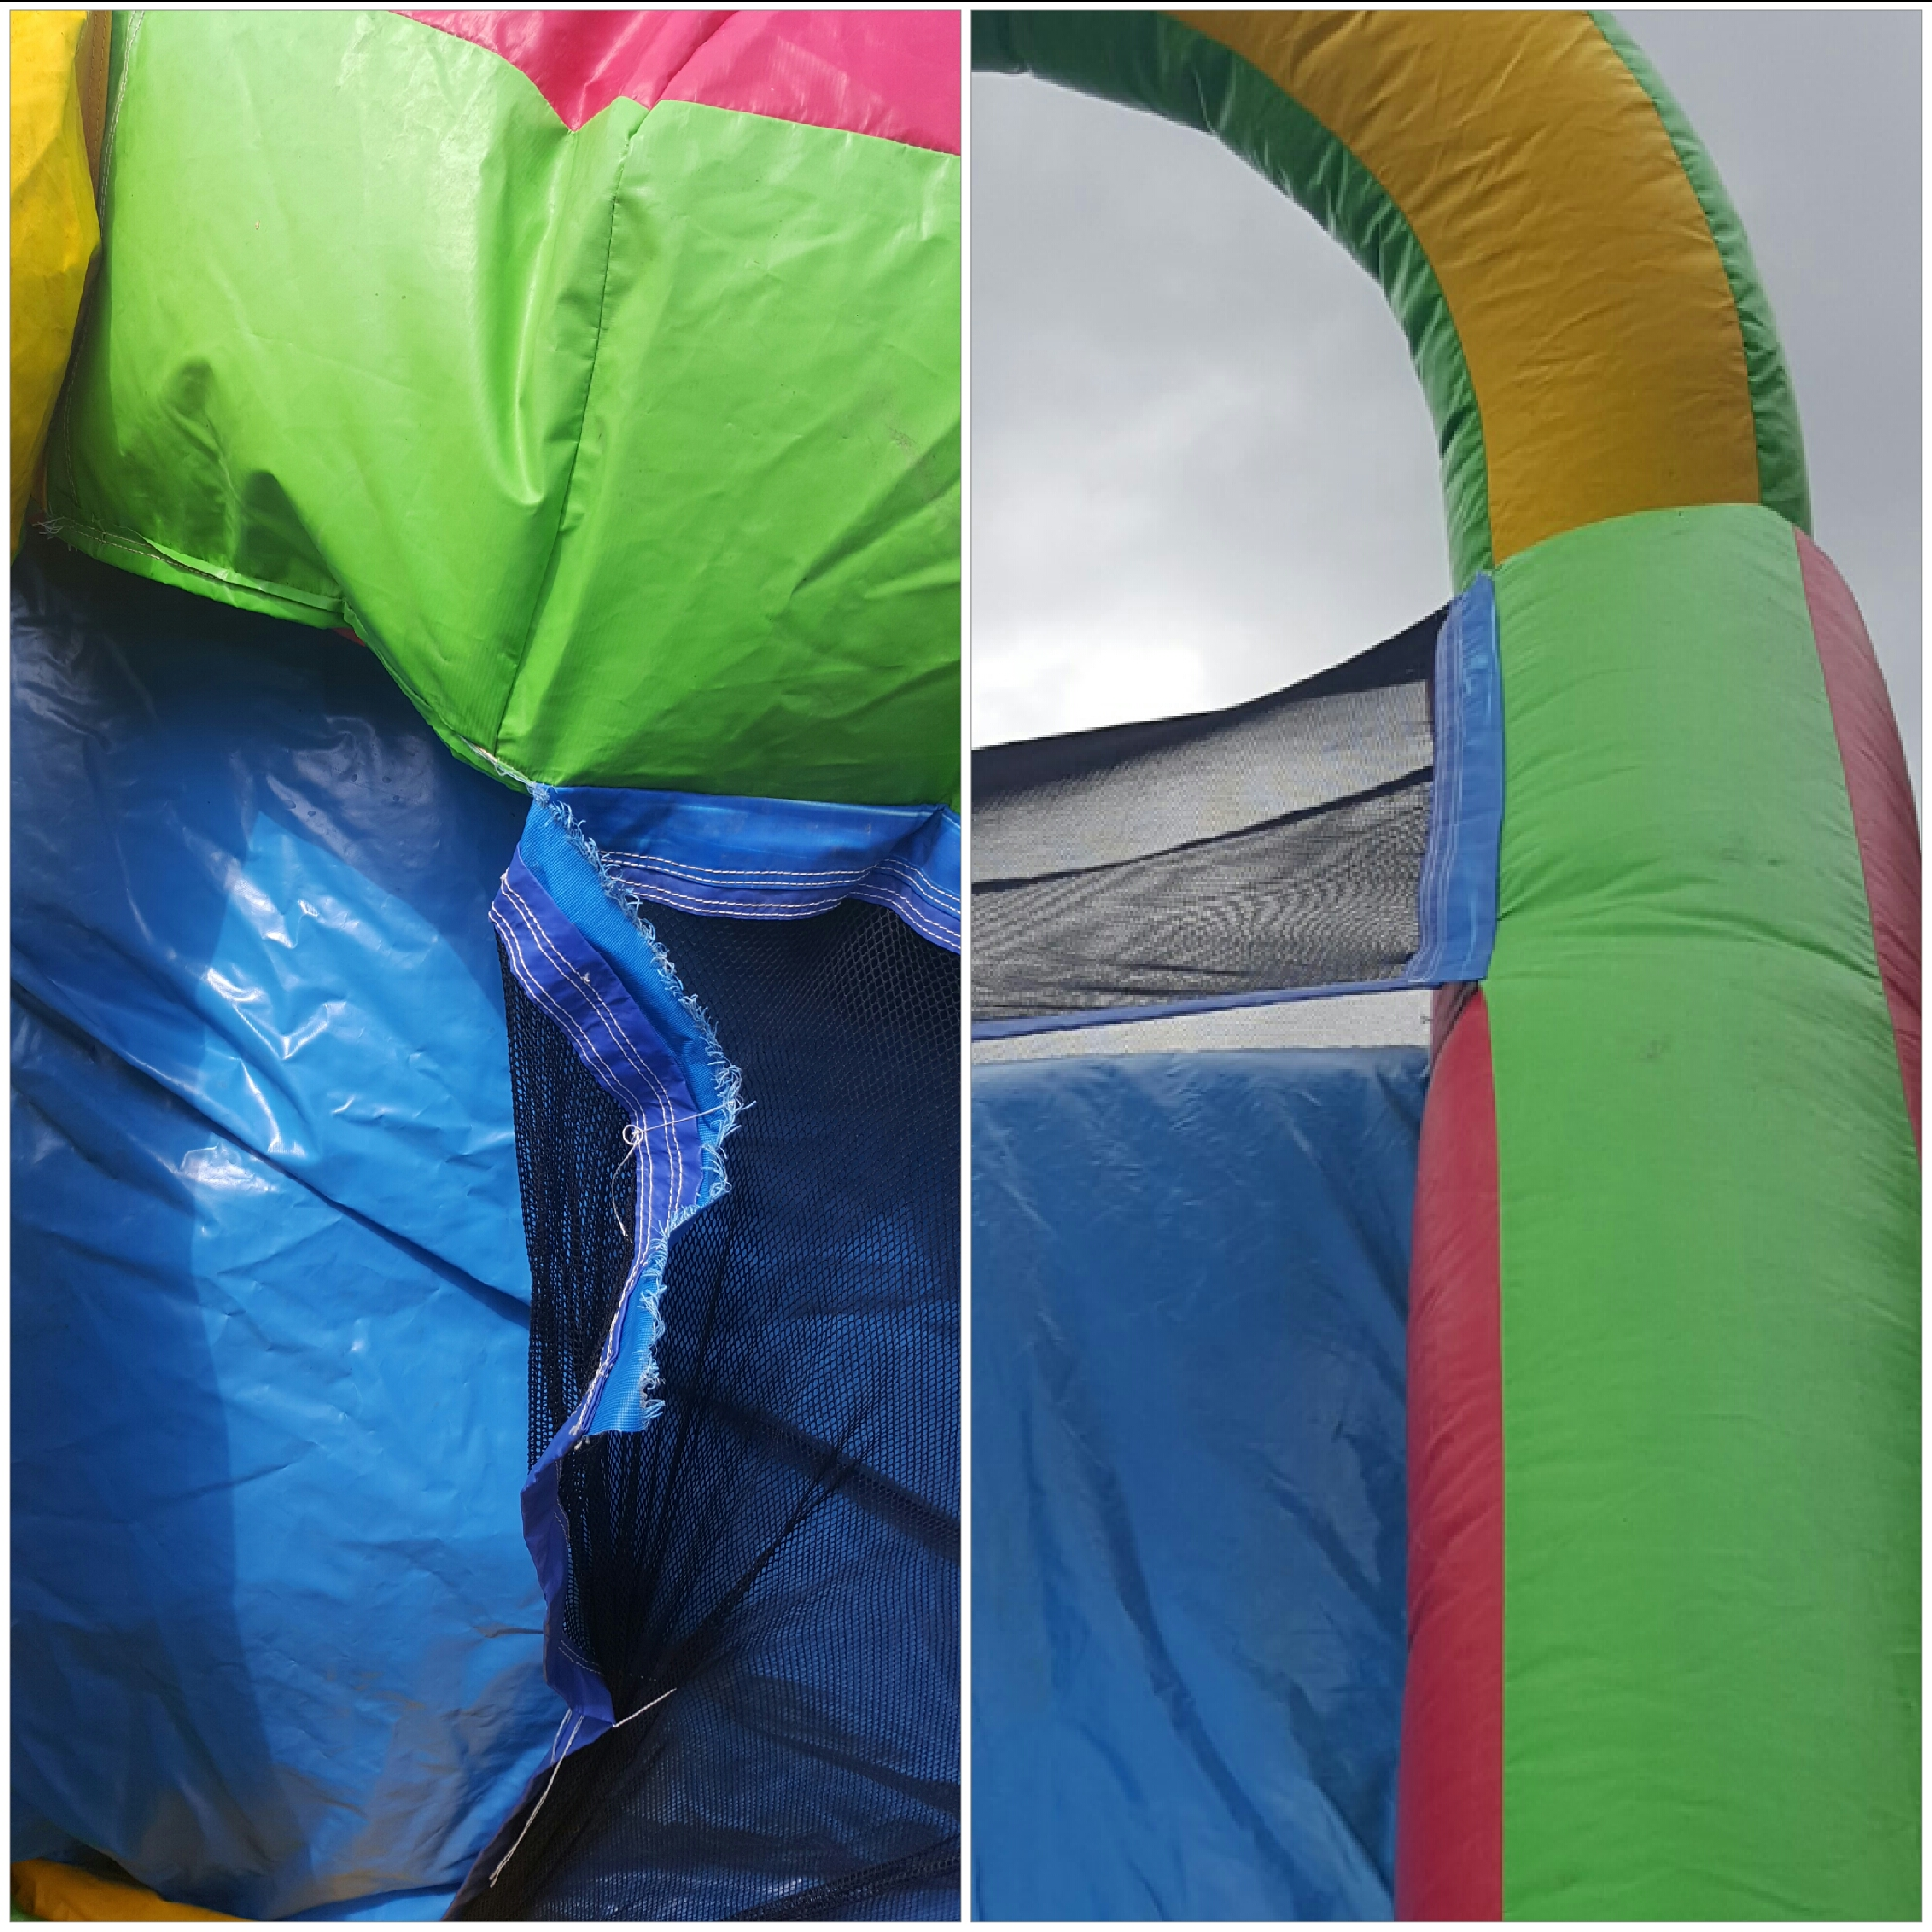 inflatables repair miami (2)